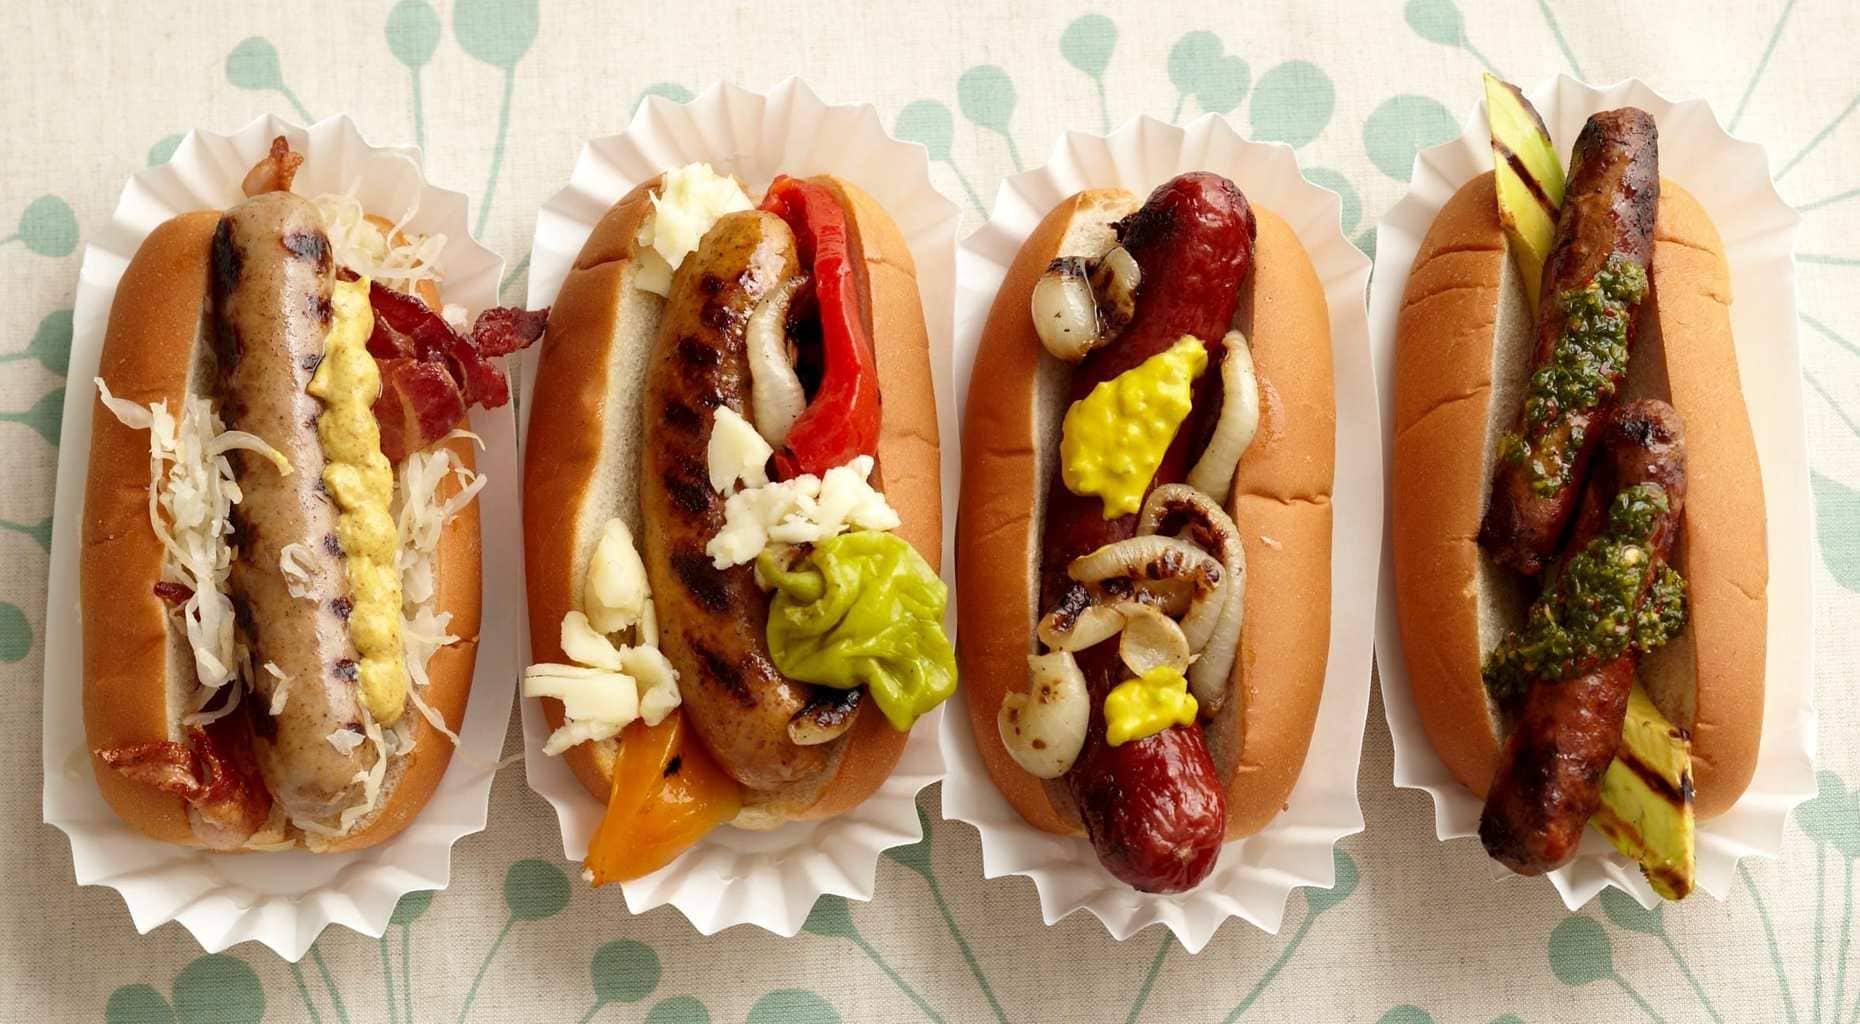 Overhead view of four fancy Hot Dogs in paper holders